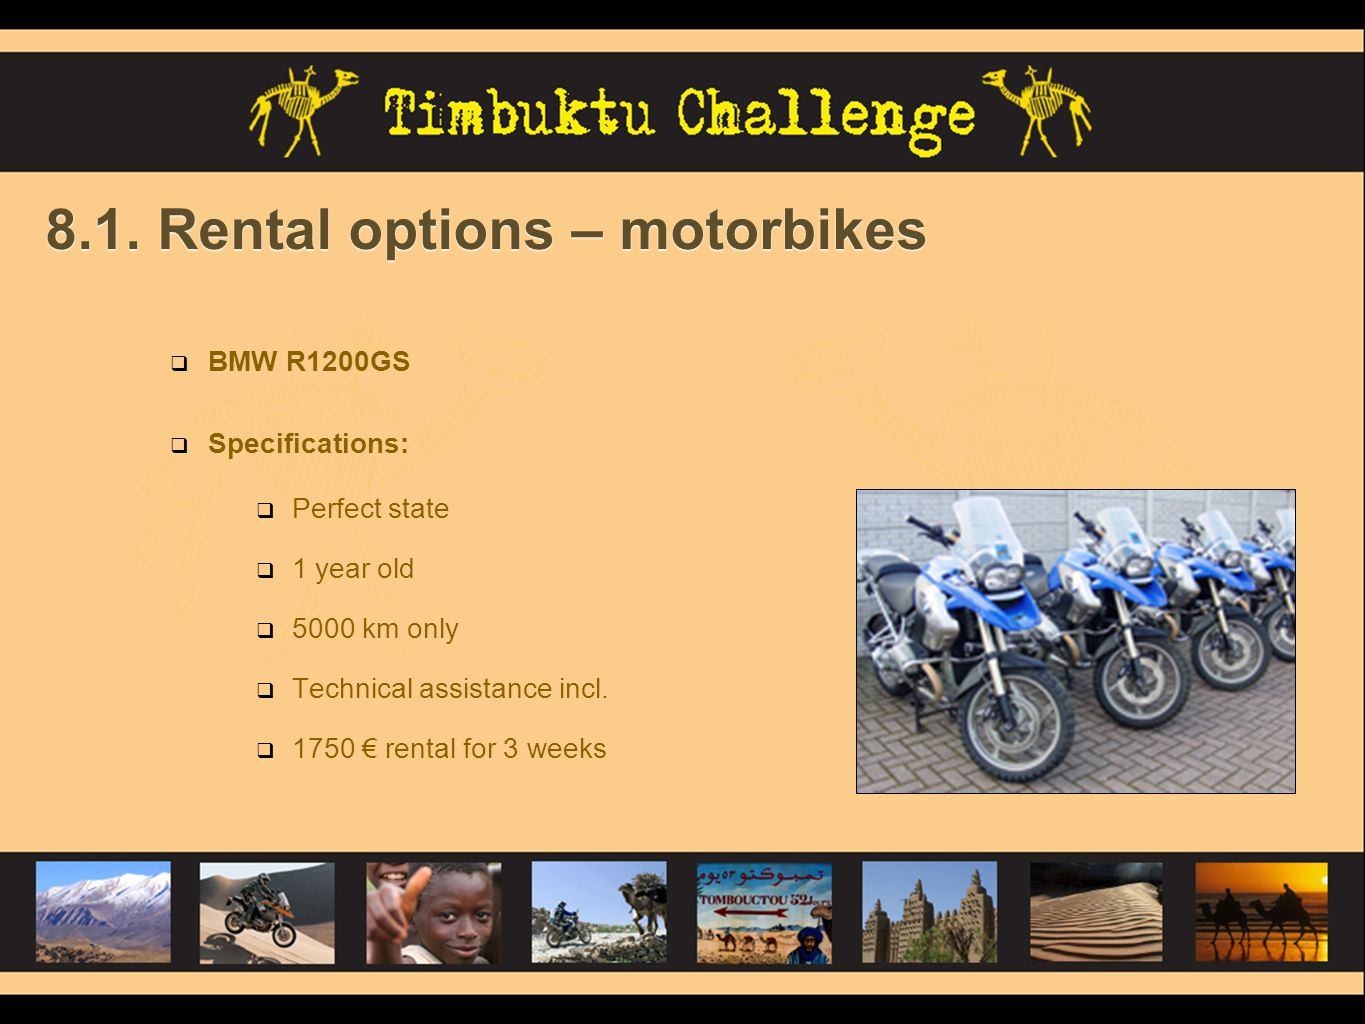 8.1. Rental options – motorbikes BMW R1200GS Specifications: Perfect state 1 year old 5000 km only Technical assistance incl. 1750 rental for 3 weeks